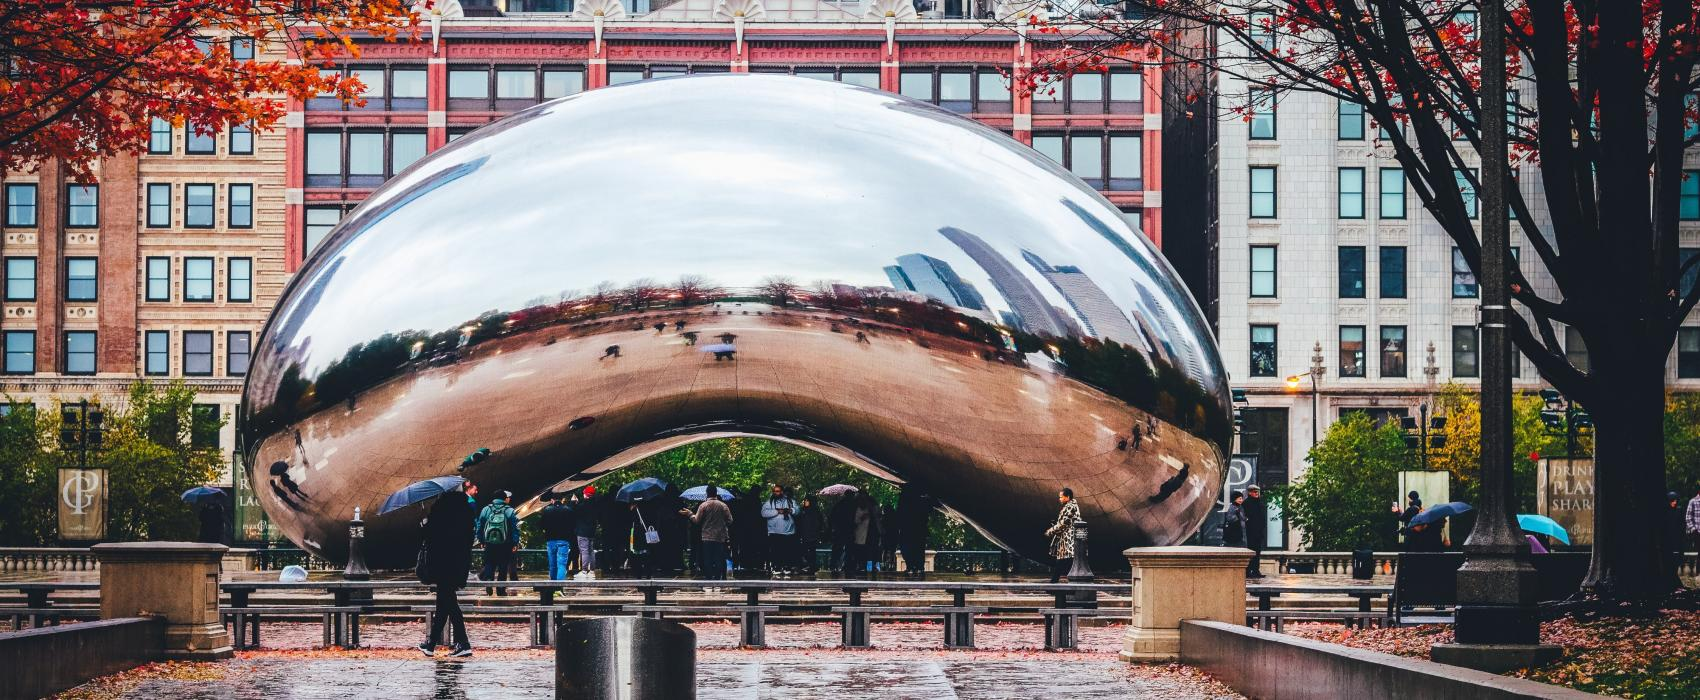 the chicago bean in fall